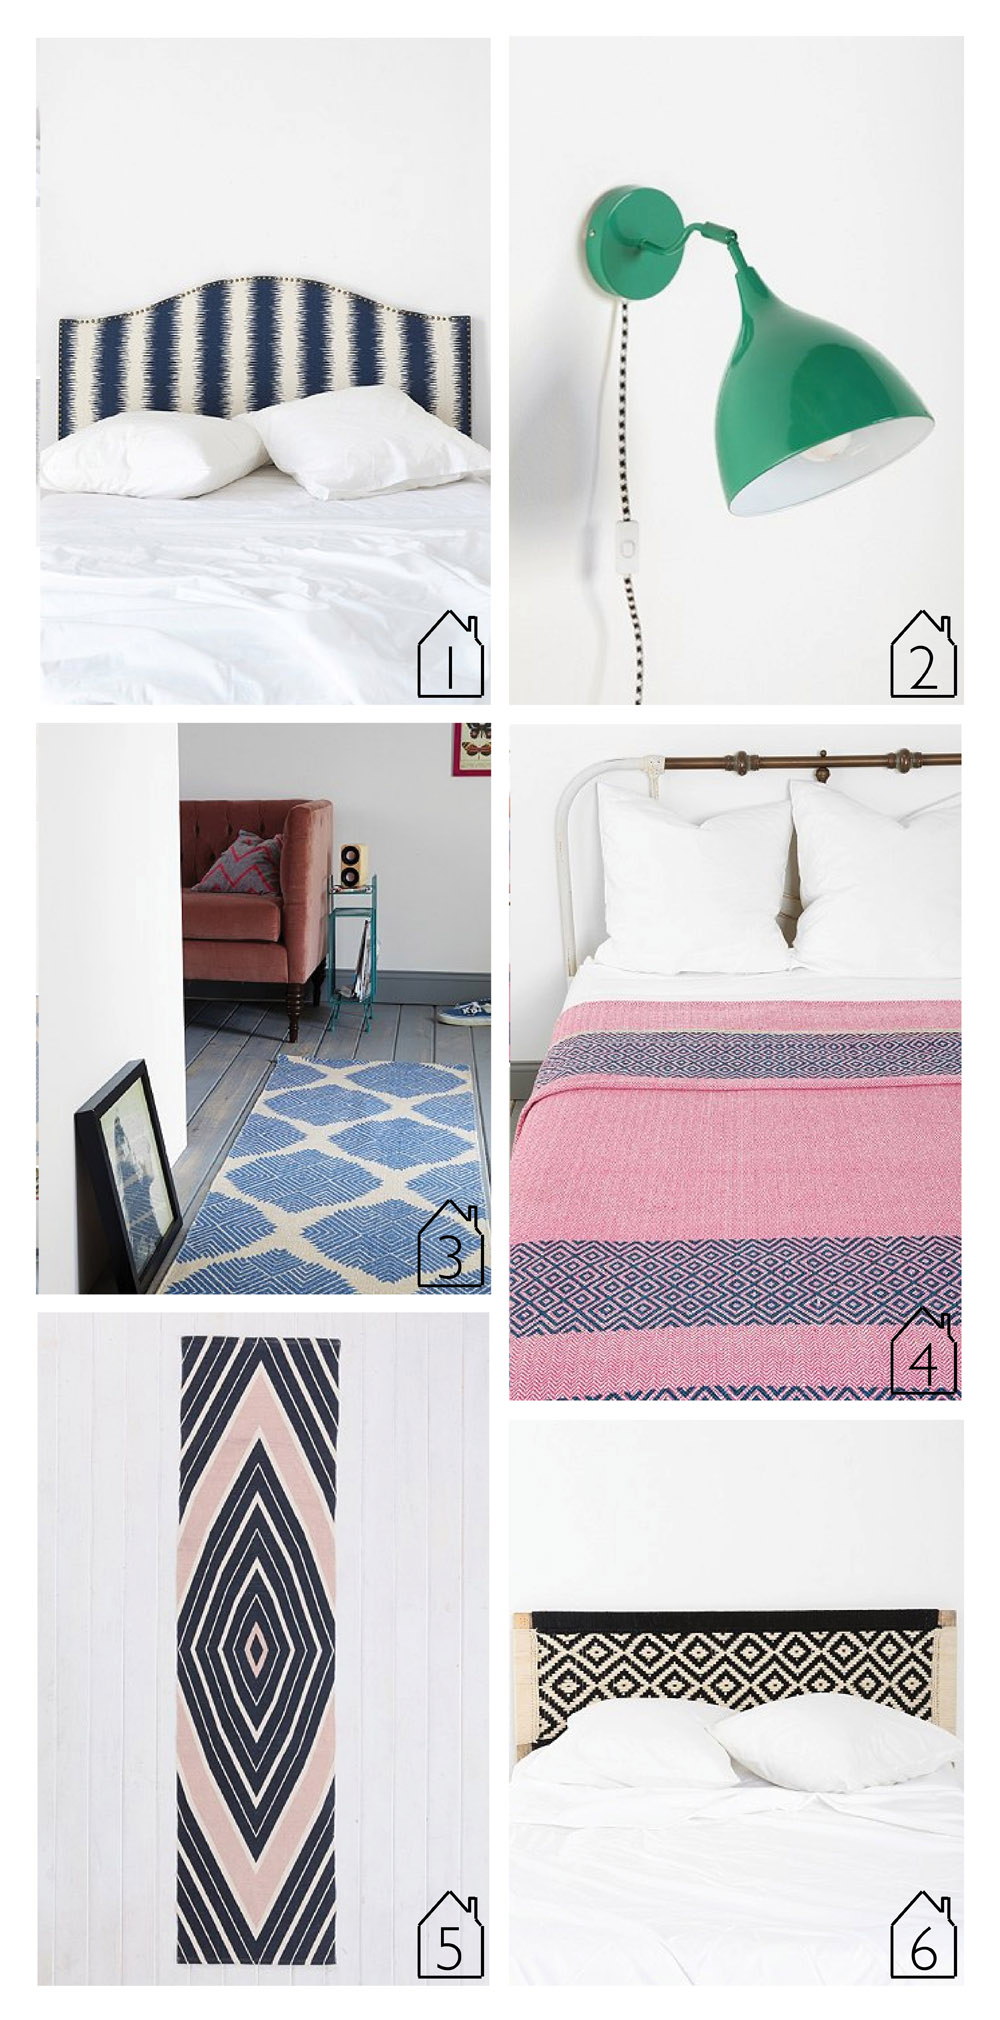 1.  Magical Thinking Nikki Headboard   2.  Industrial Sconce   3.  Magical Thinking Diamond Tile Rug   4.  Magical Thinking Overprint Woven Blanket   5.  4040 Locust Radial Runner   6.  Magical Thinking Diamond Headboard